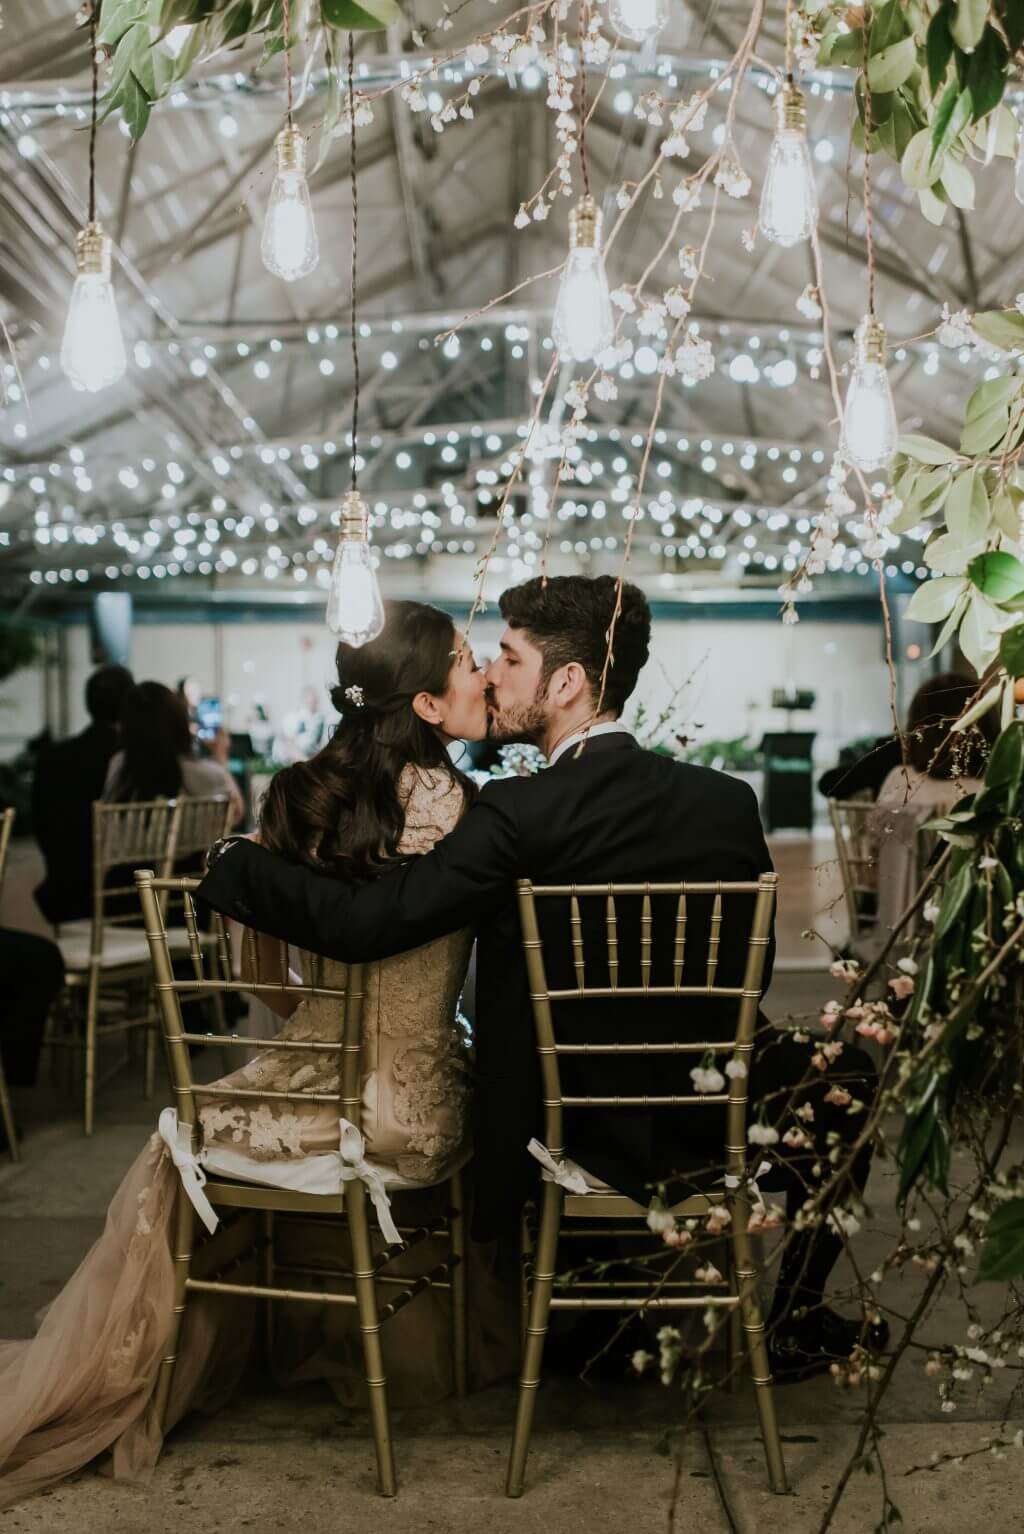 Bride and Groom kiss at Sweet Heart's Table at the Horticulture Center